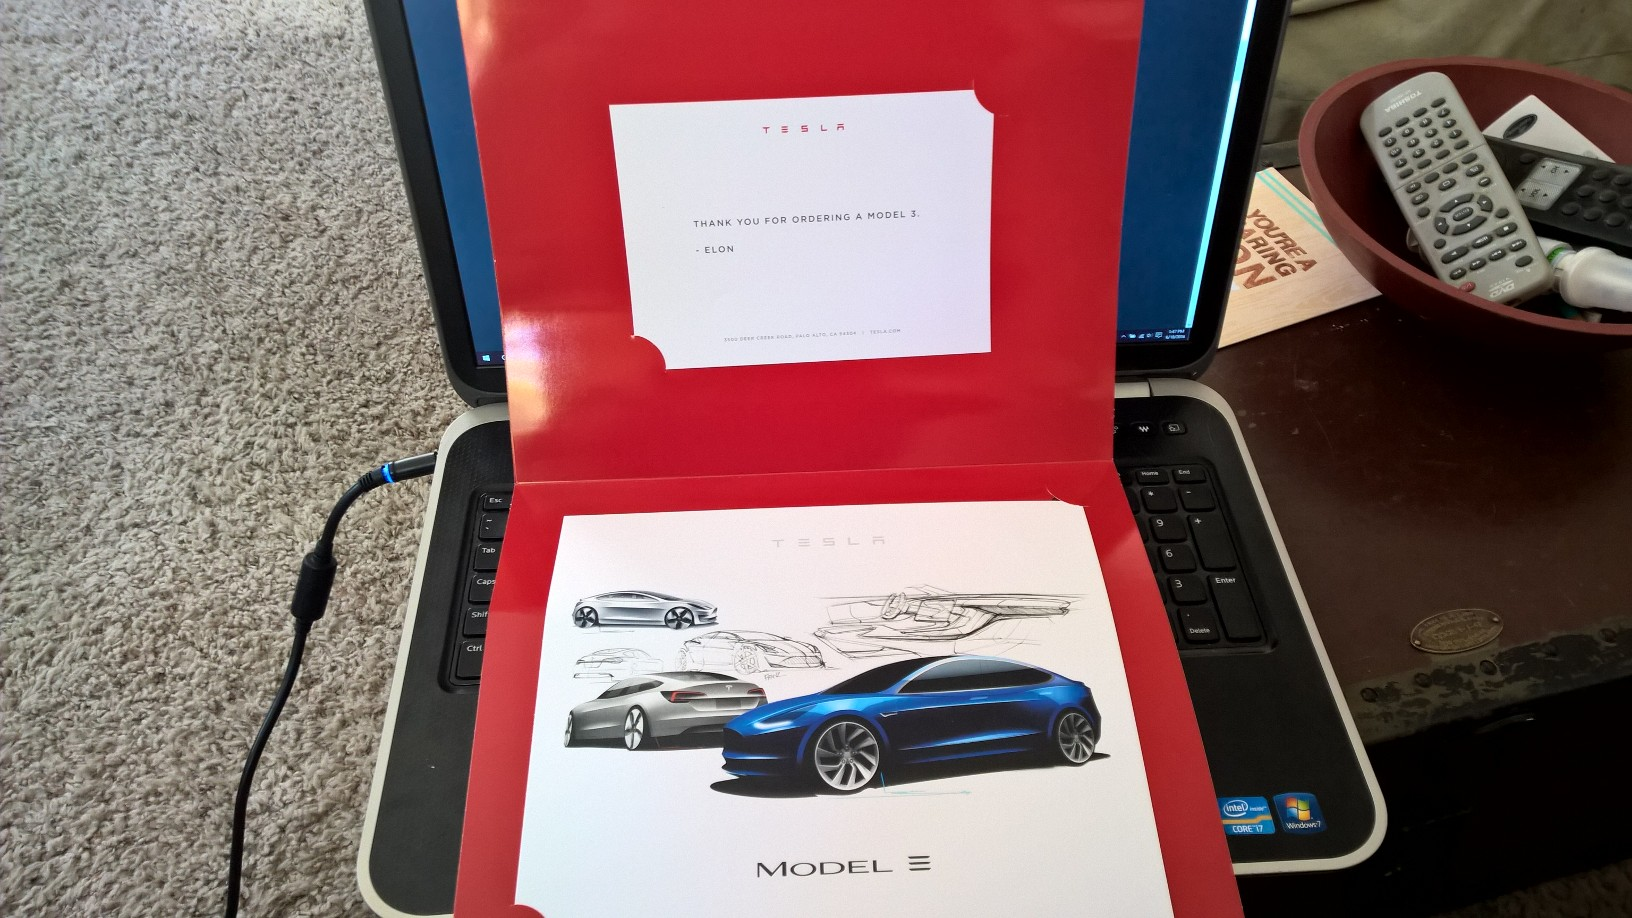 model 3 thank you gift